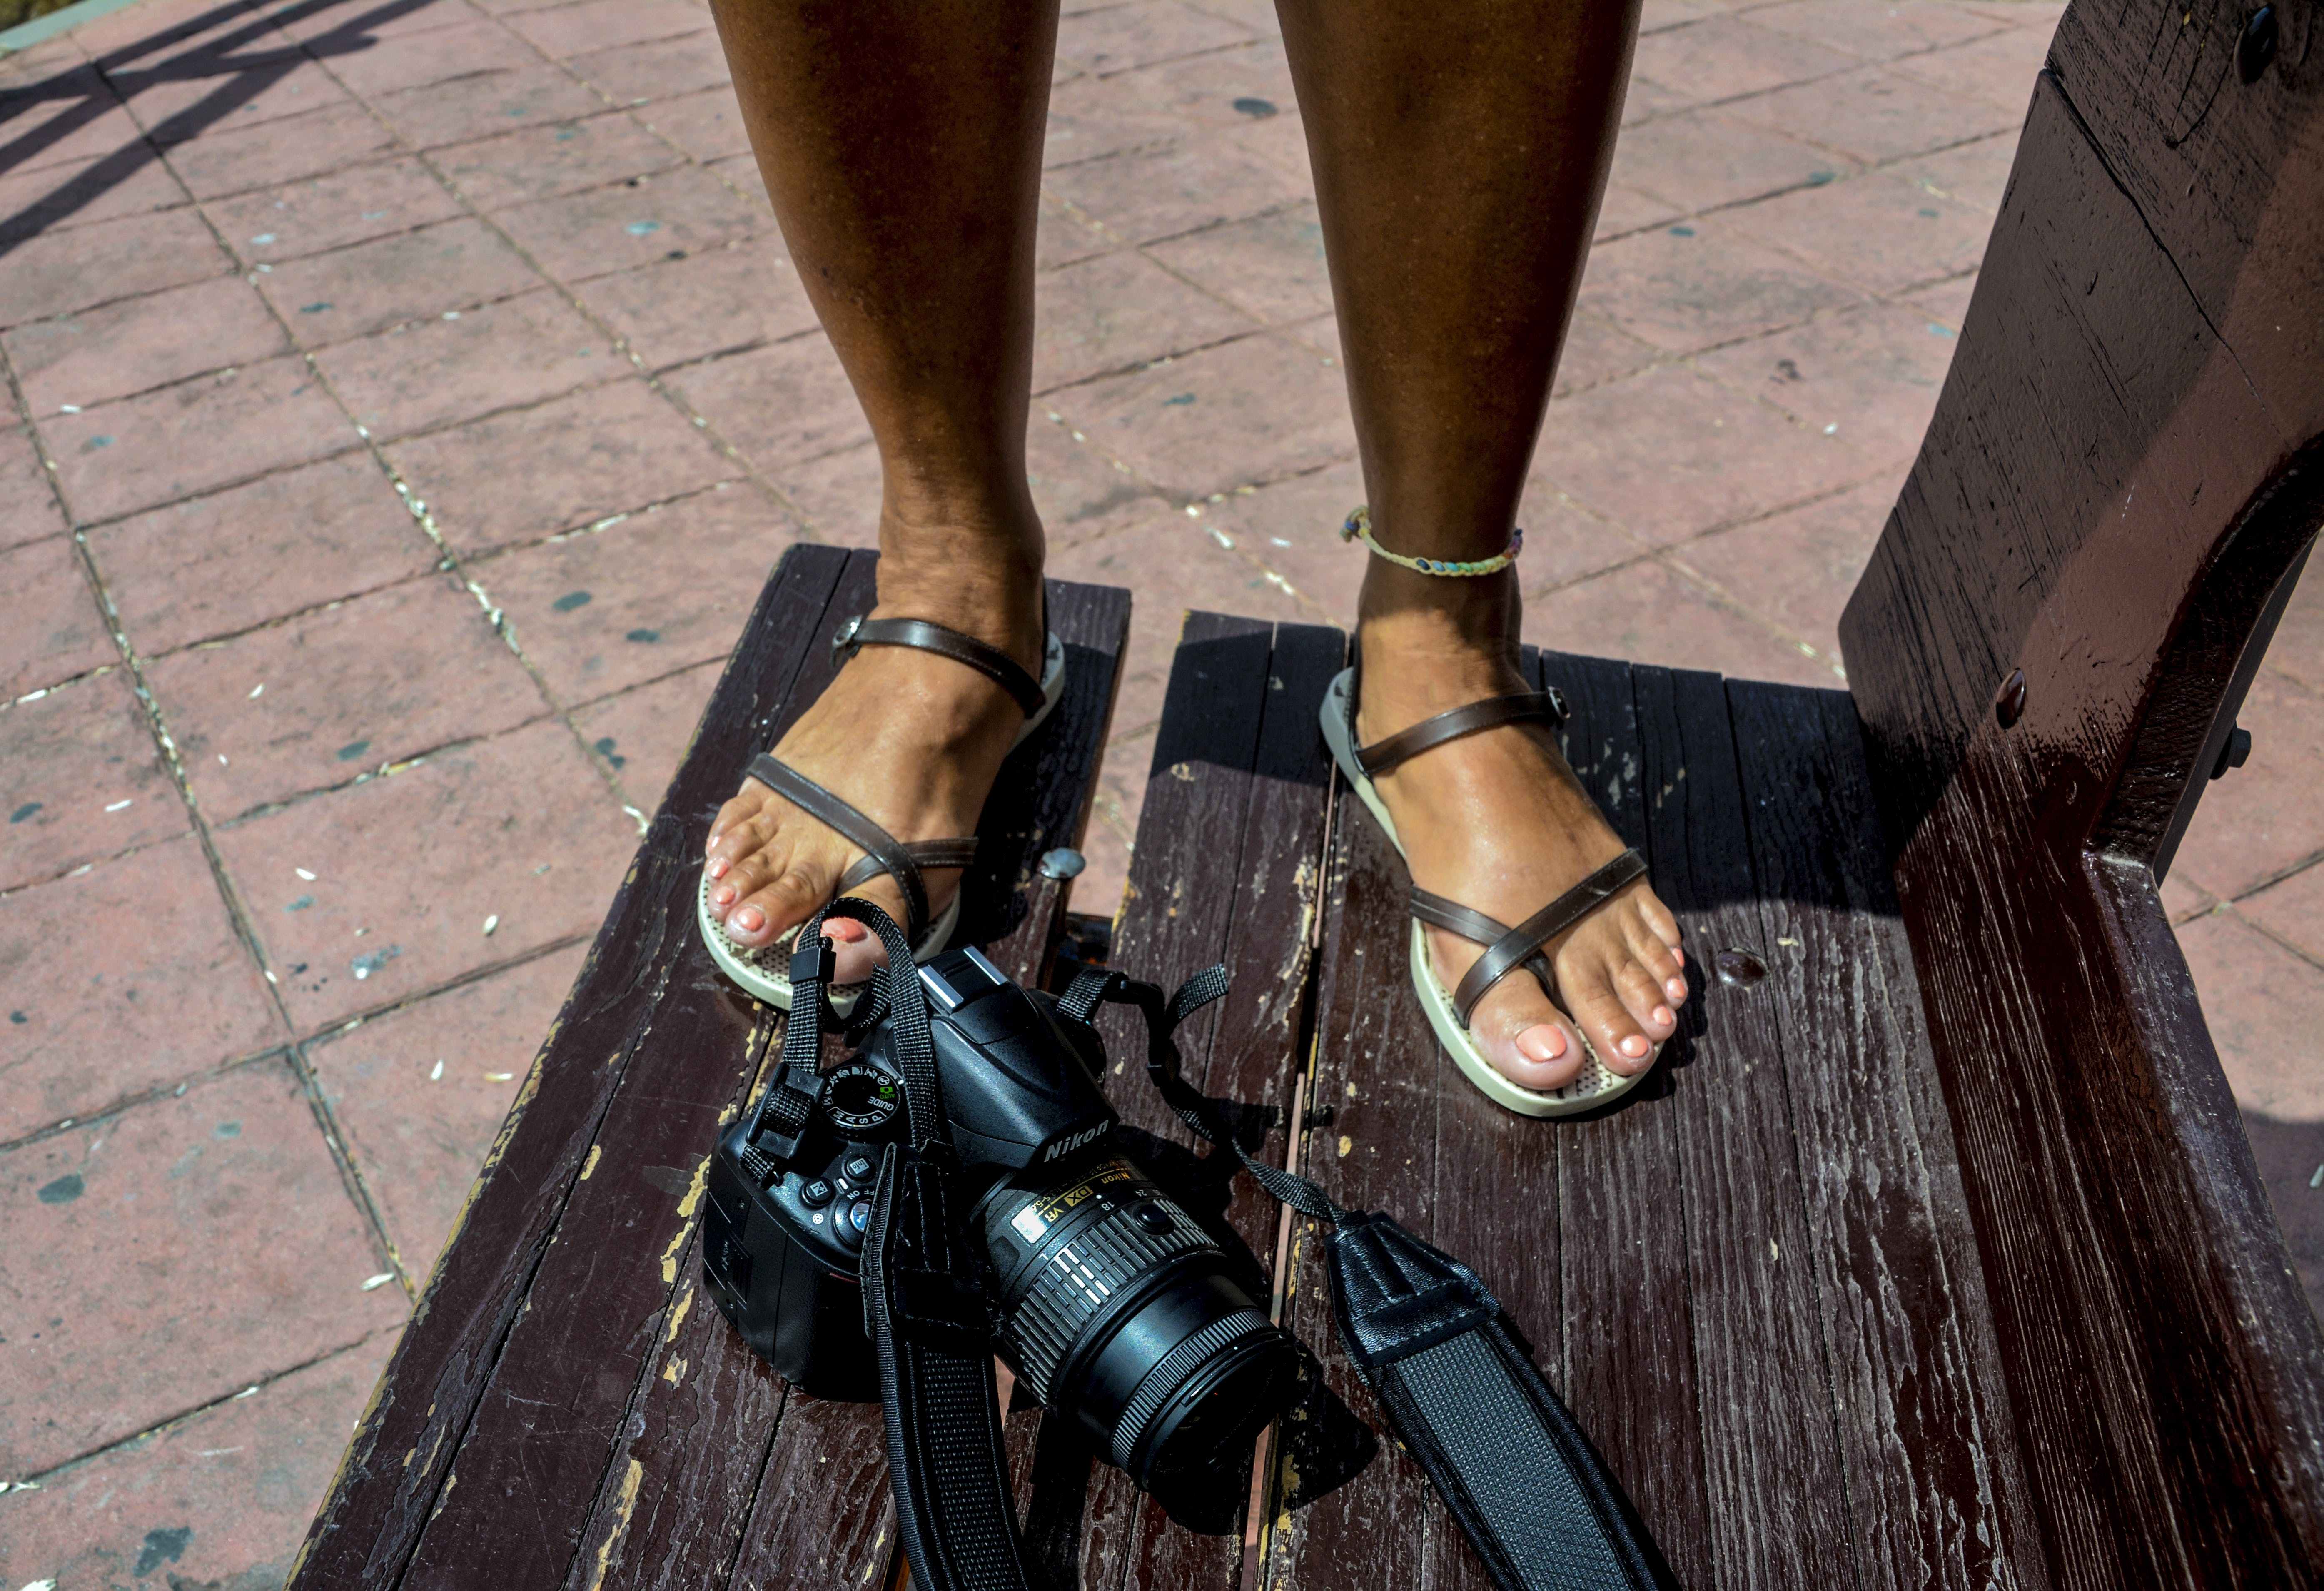 Free stock photo of brench, camera, feet, standing